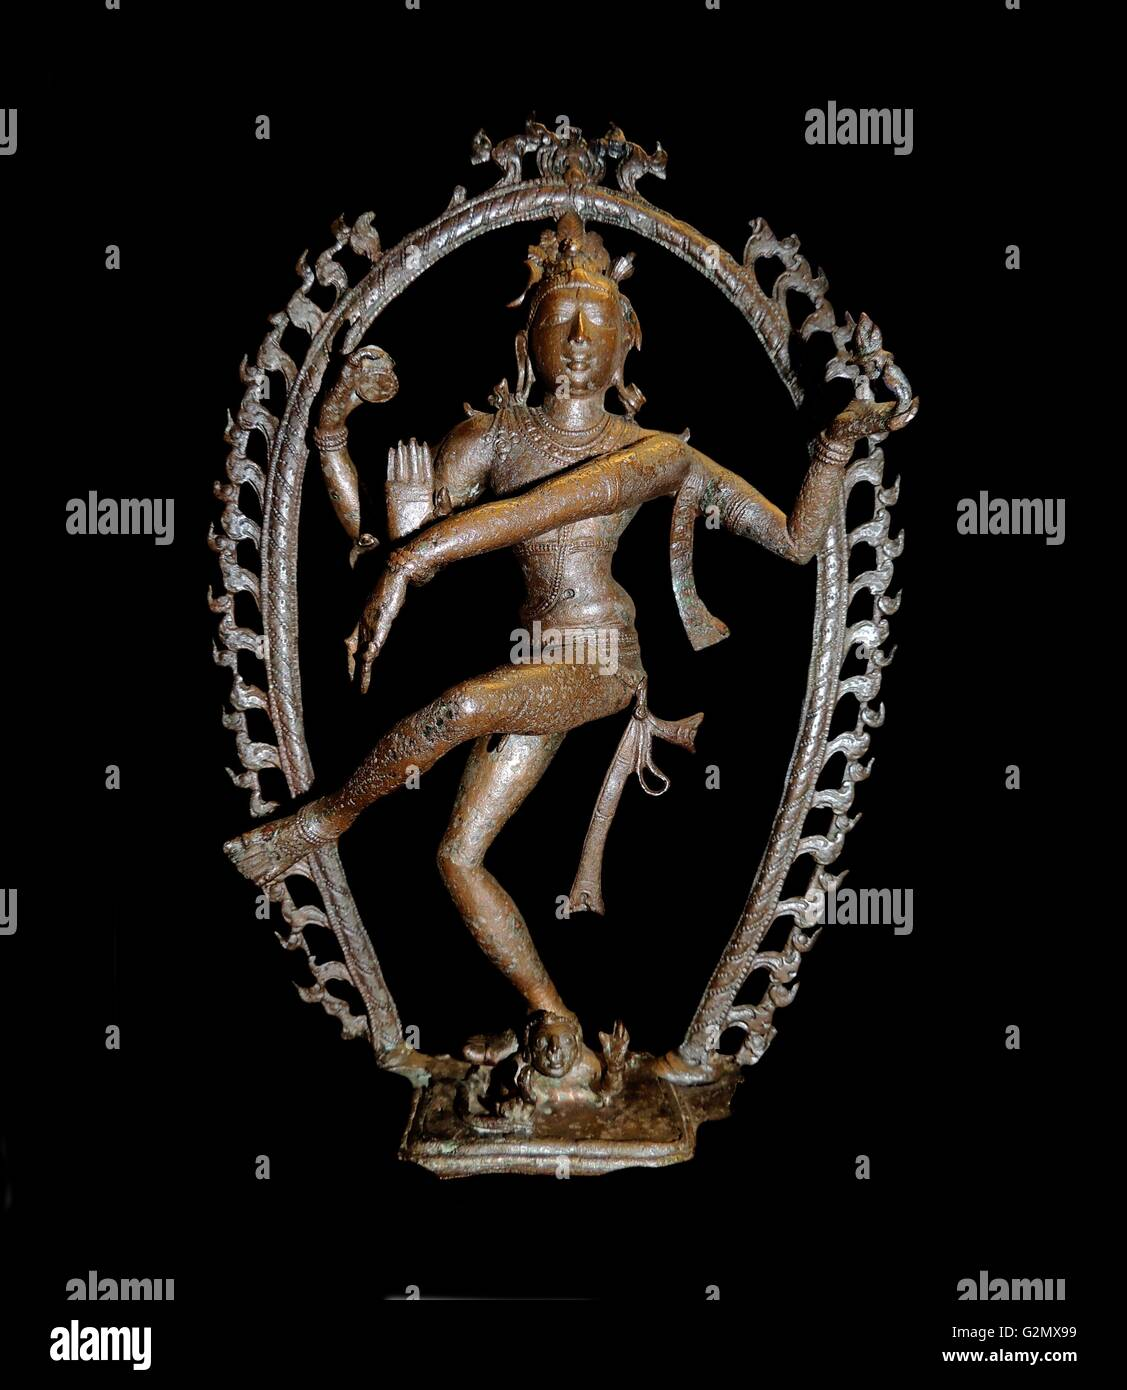 Shiva as lord of the dance, Nataraja - Stock Image